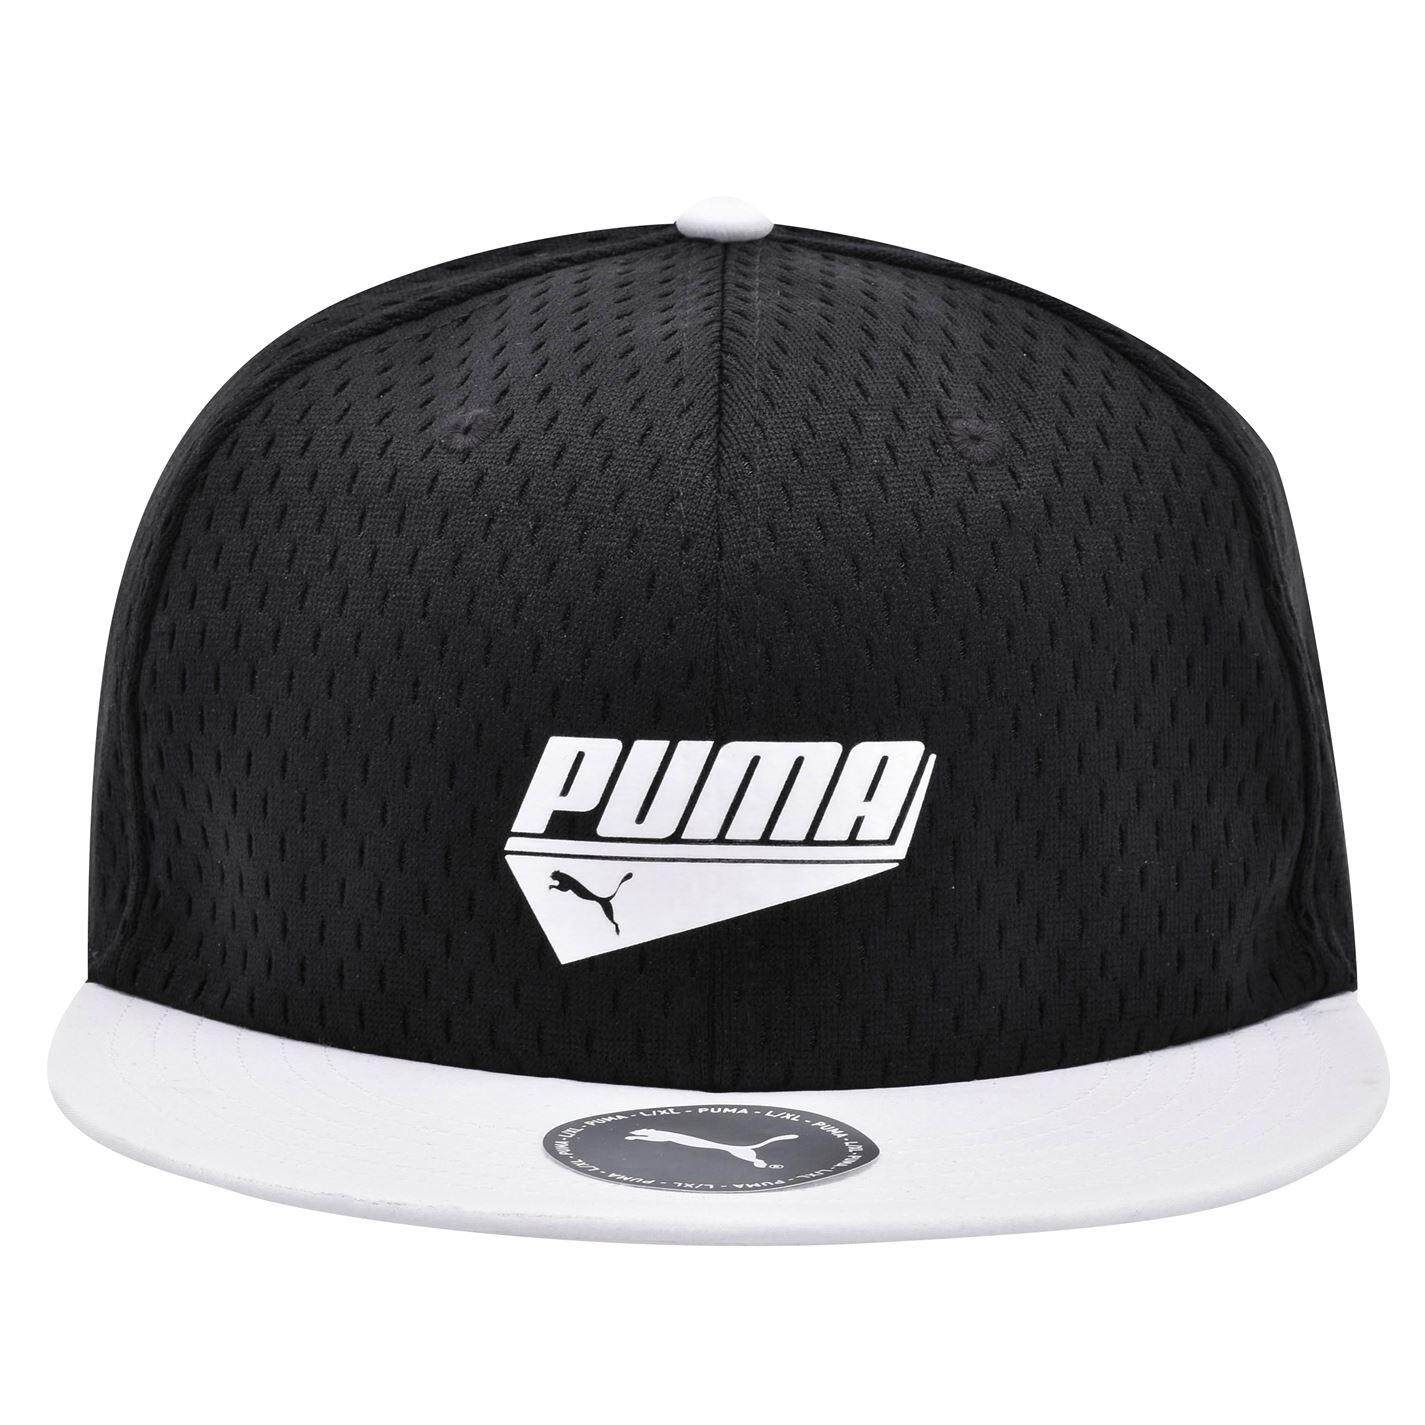 25659b59 Puma Products With Best Online Price At Lazada Malaysia